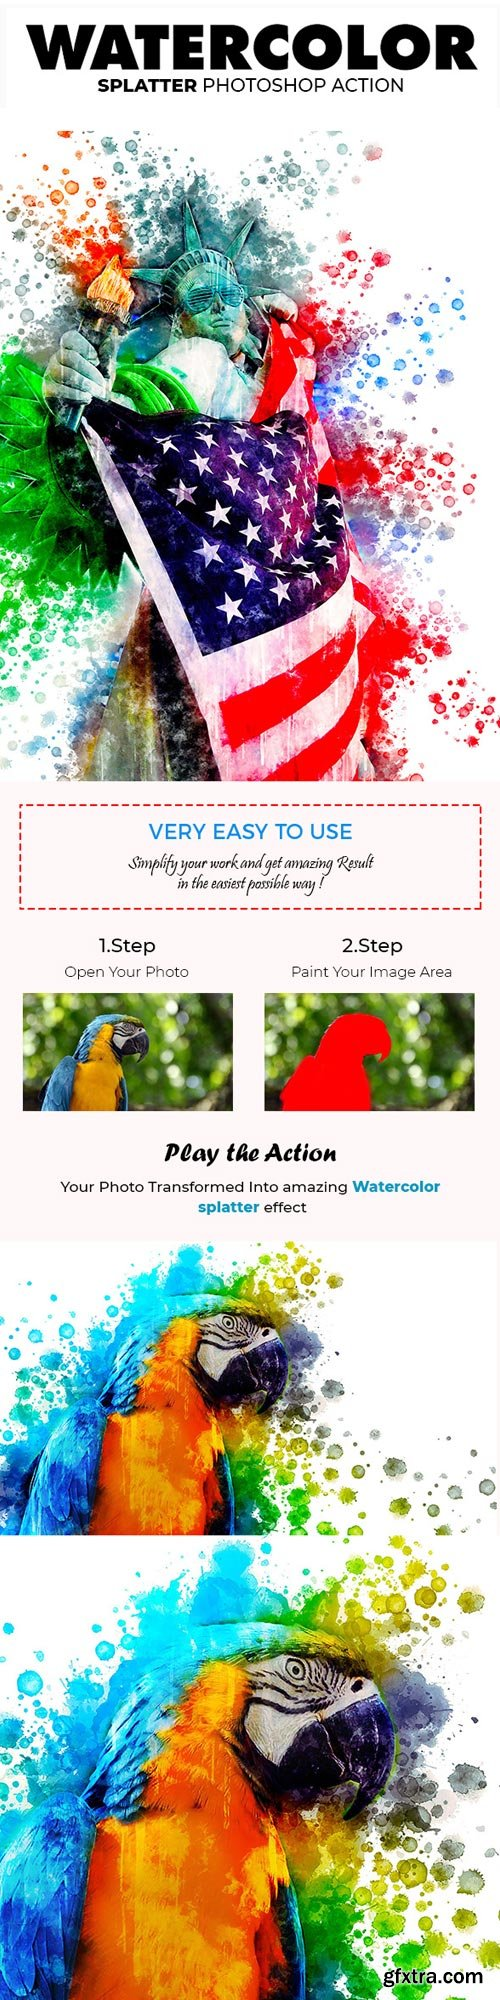 GraphicRiver - Watercolor Splatter Photoshop Action - 21653132